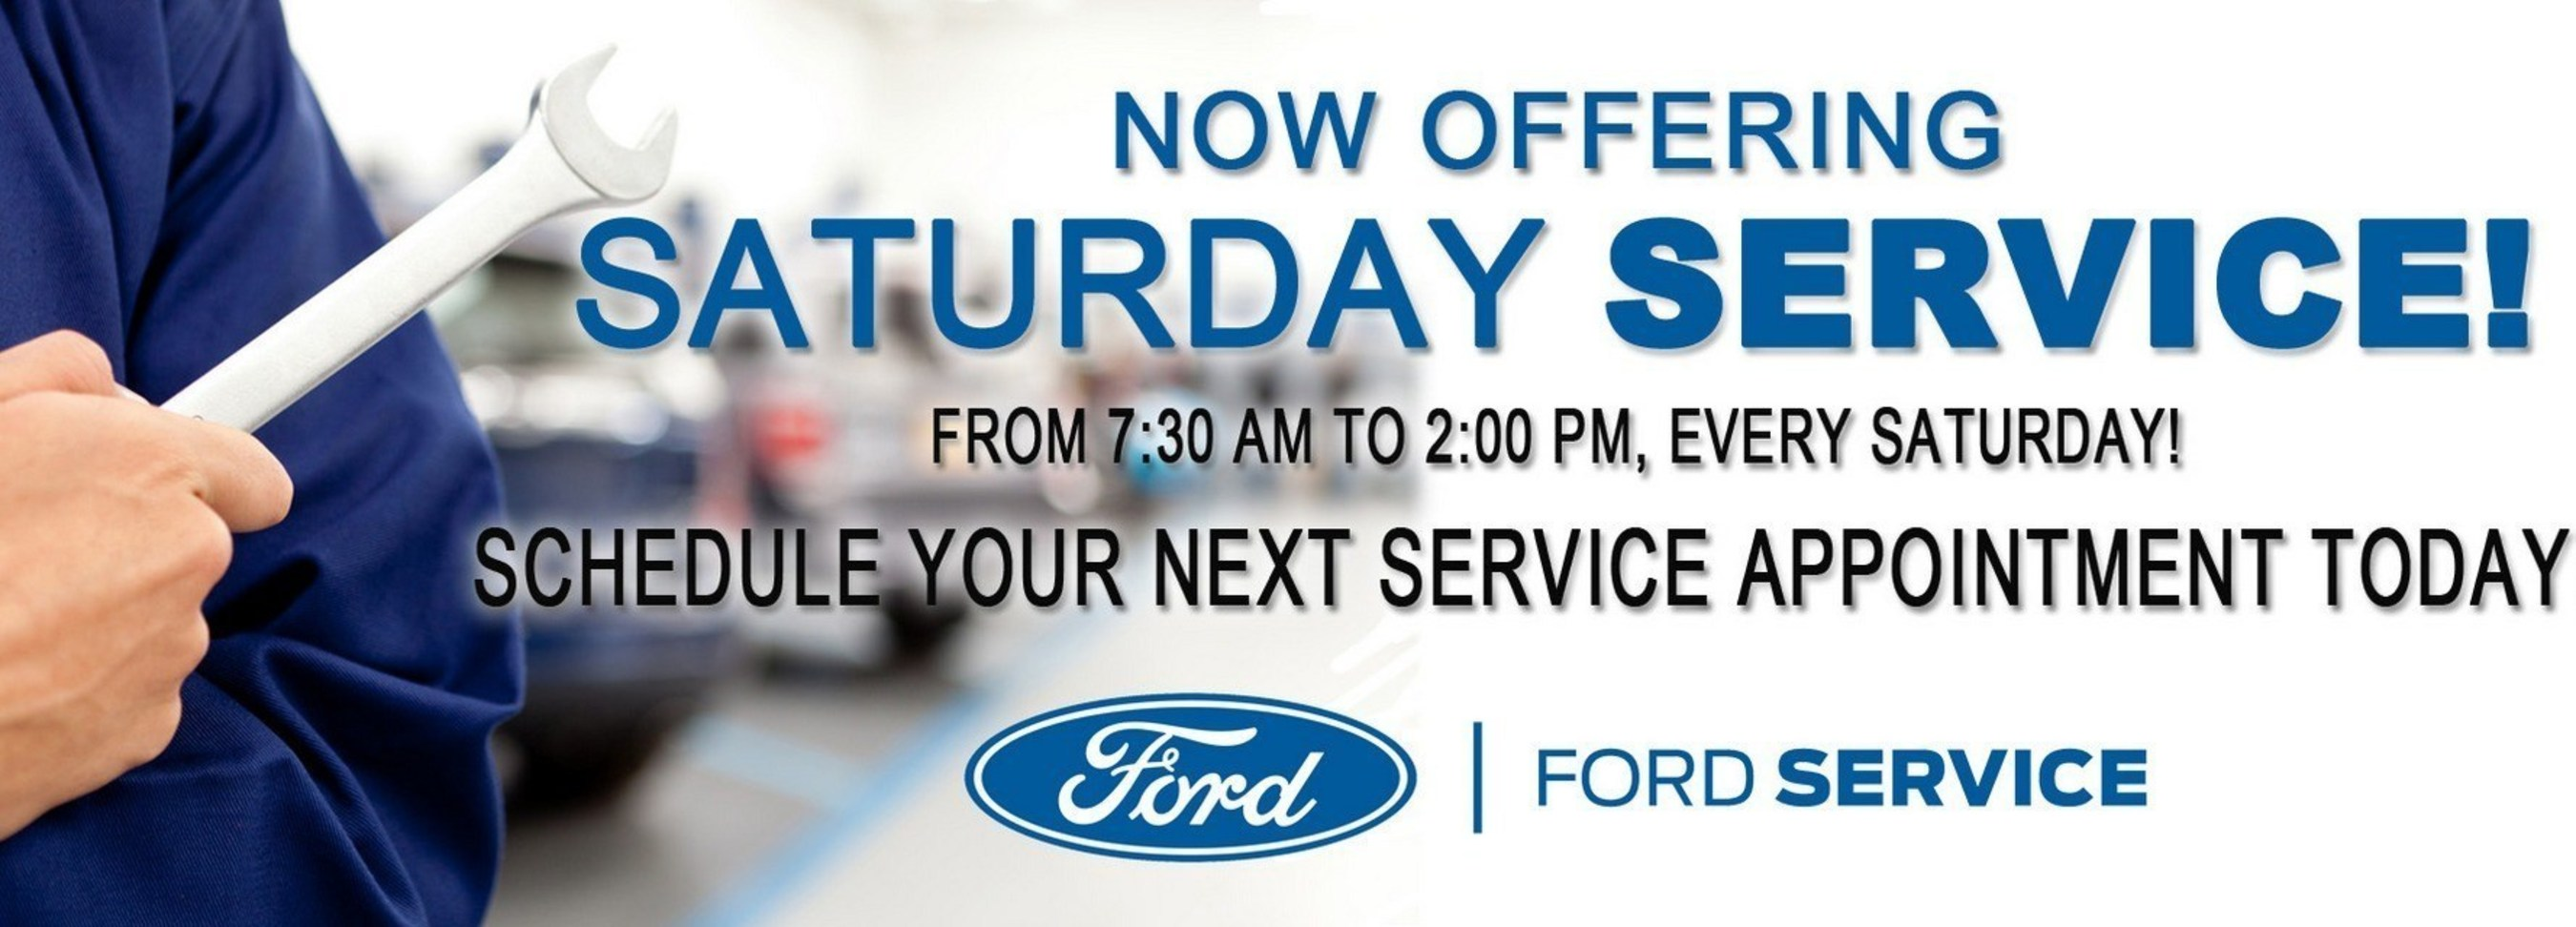 Saturday car service, coupons and more now offered at Dahl Ford